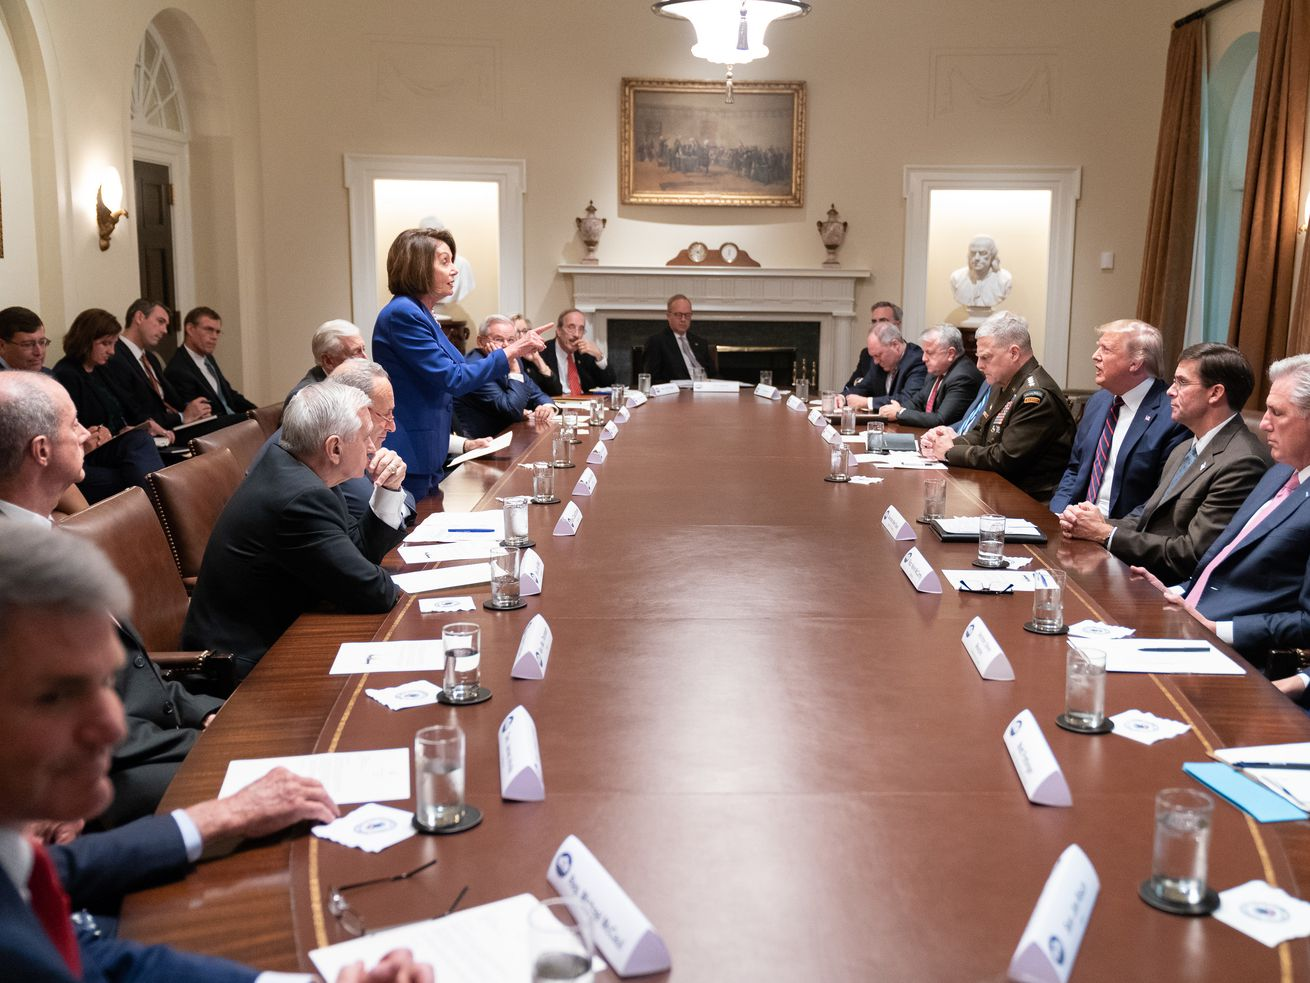 House Speaker Nancy Pelosi stands up and speaks to President Trump, pointing at him, as he and other men sit around a long table at a White House meeting.